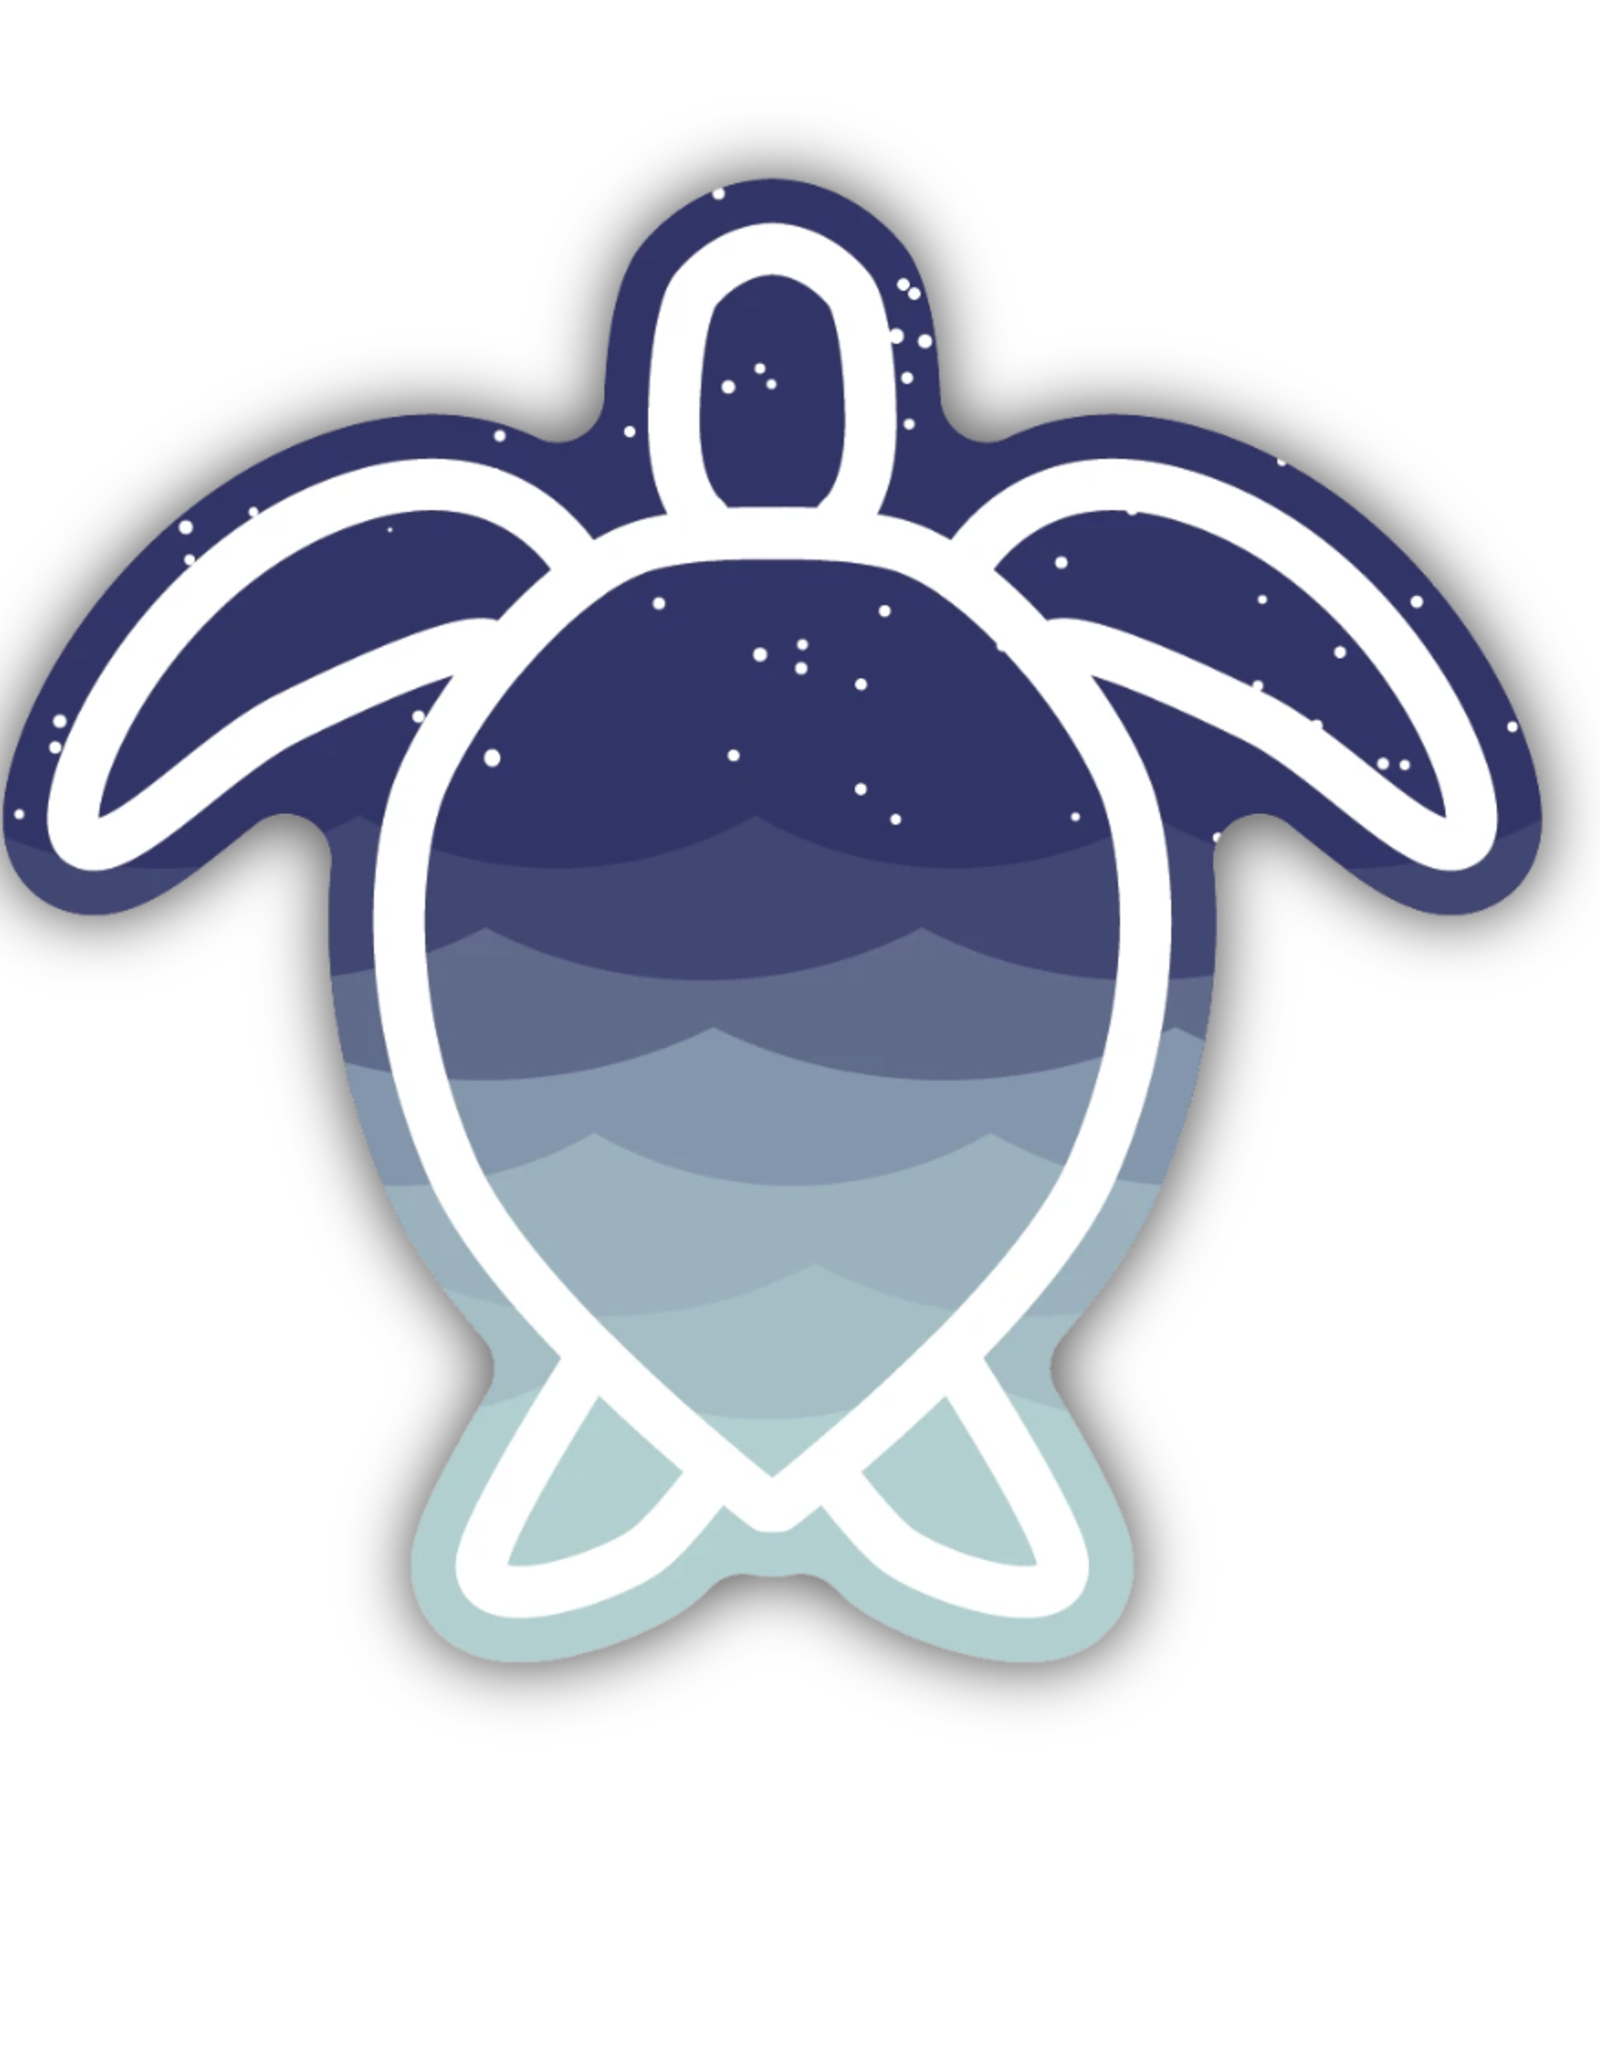 NW Stickers - Sea Turtle Waves